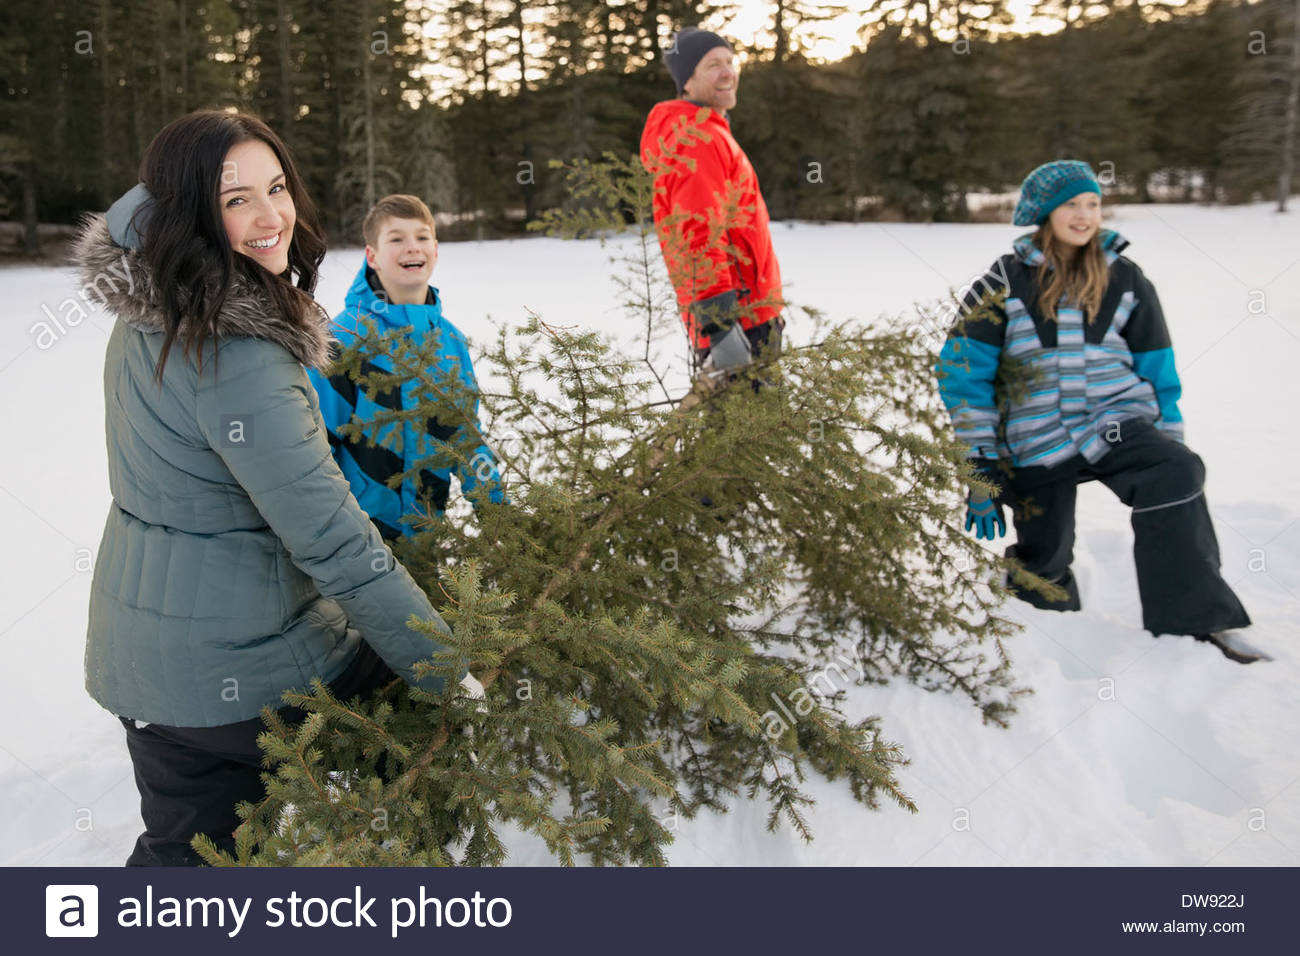 Family carrying cut down Christmas tree in snow Stock Photo ...